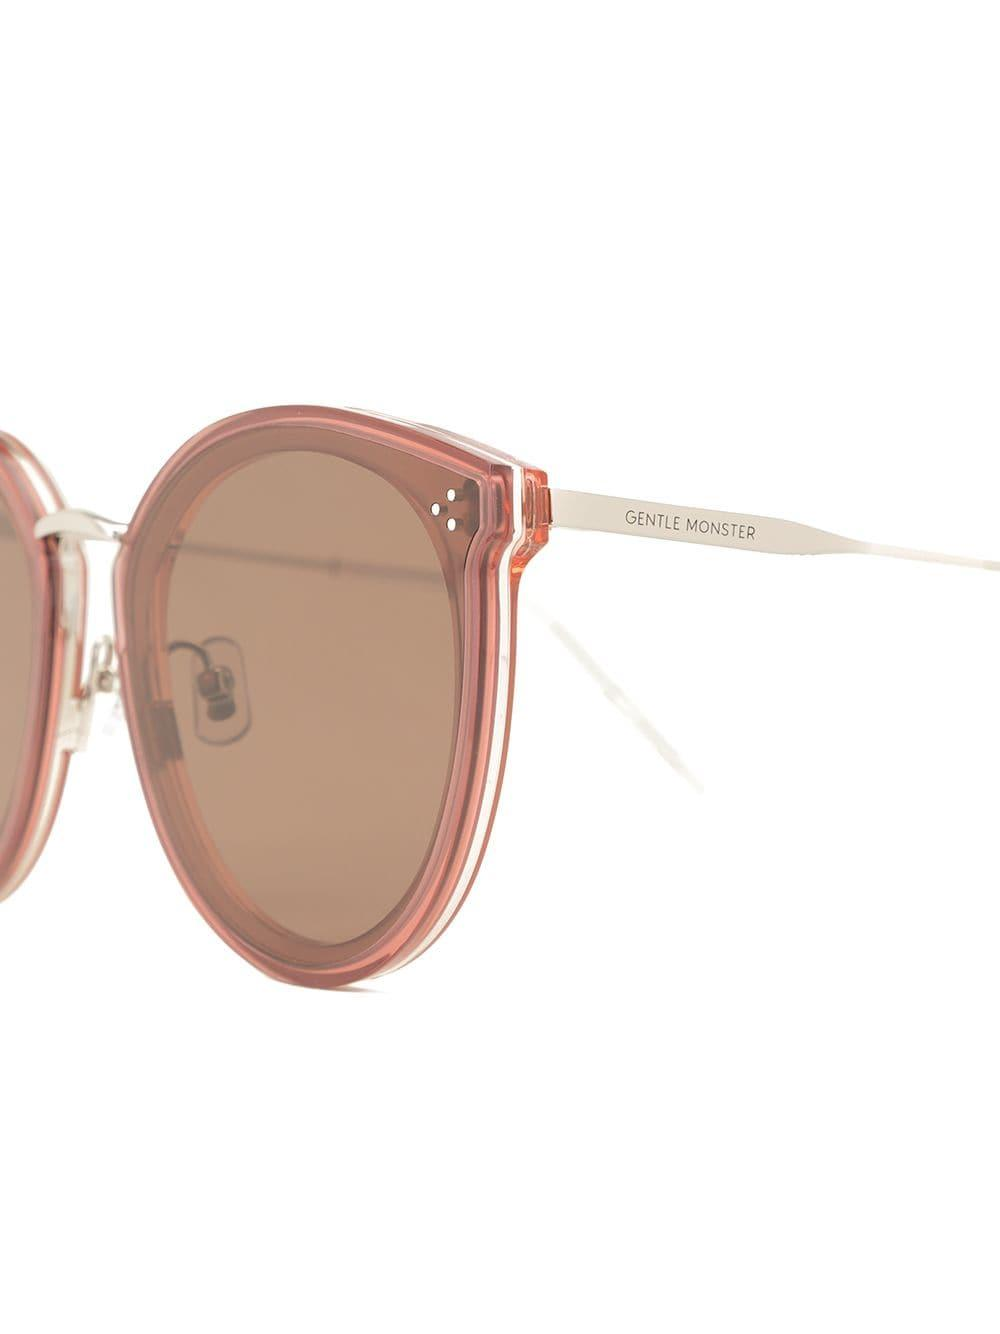 b9e15f6ba3 Gentle Monster - Pink Paw Paw Sunglasses - Lyst. View fullscreen